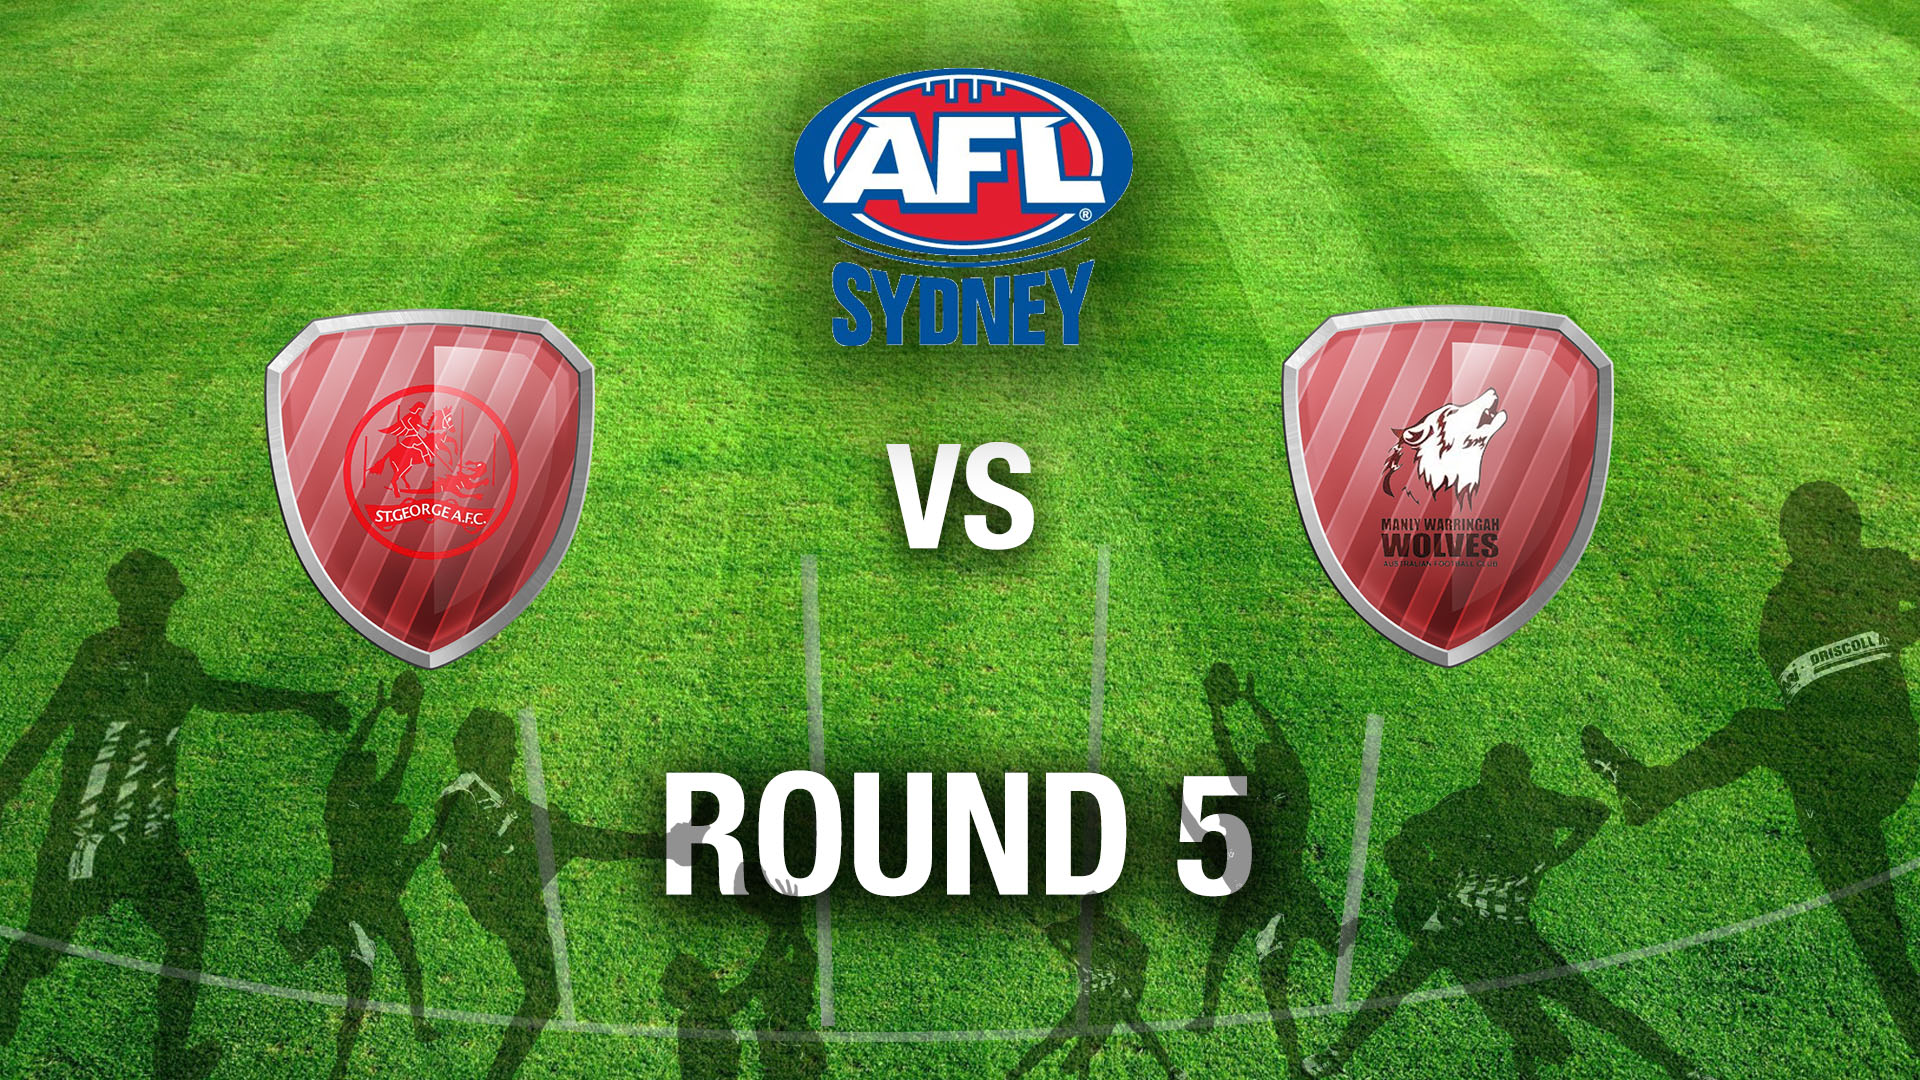 RD 5 St George v Manly Warringah